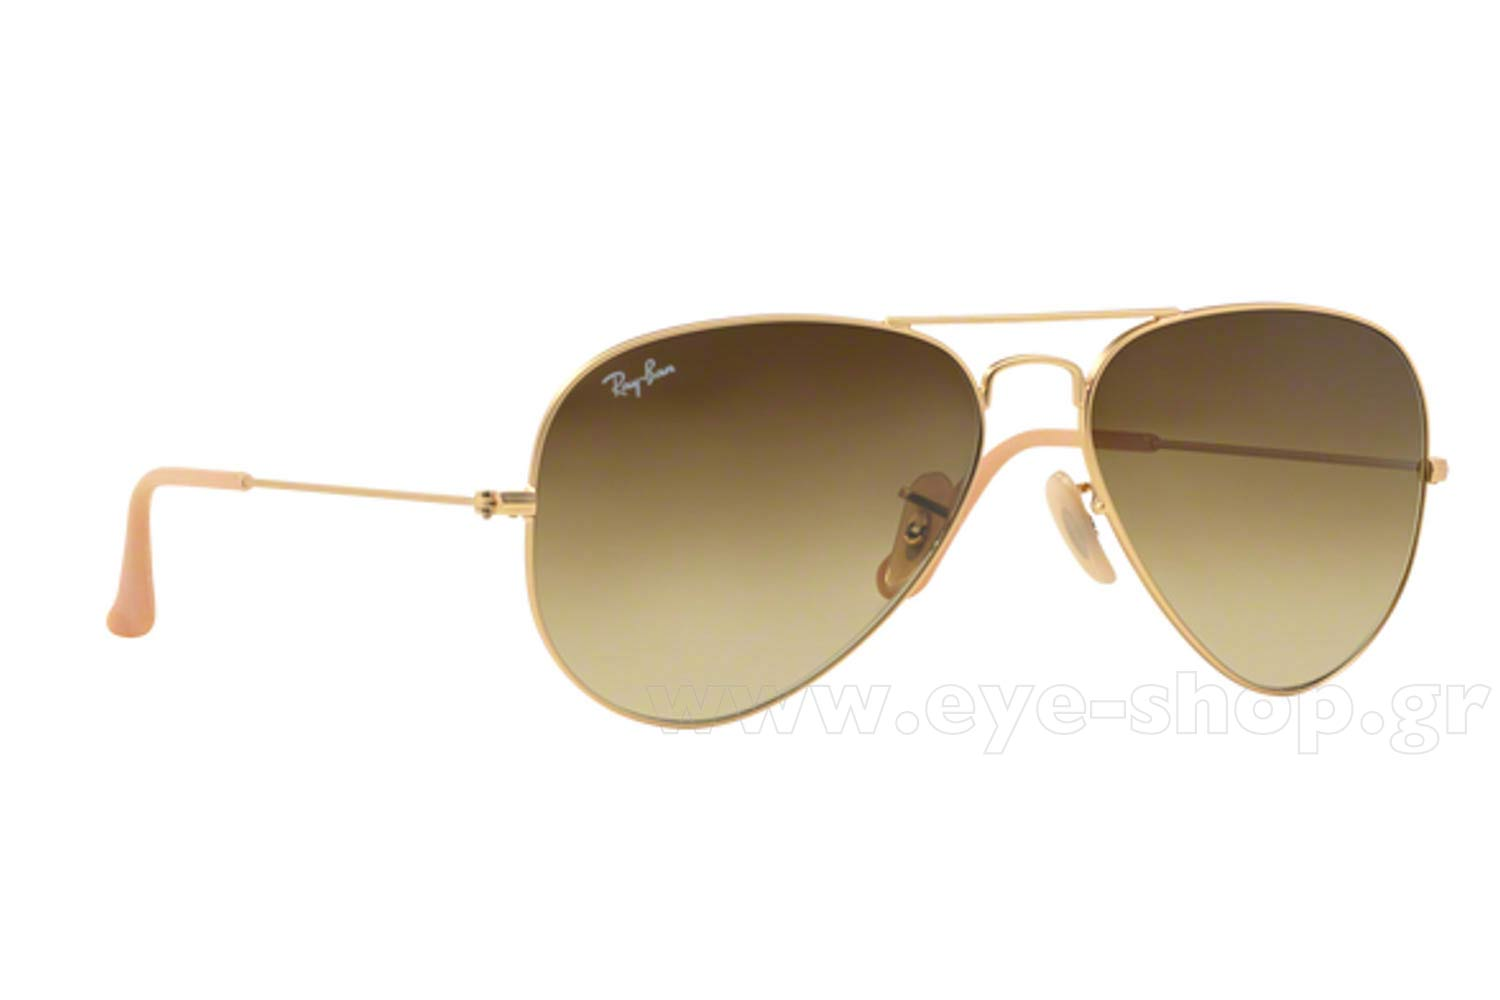 2afd8cec04 All Models Of Ray Ban Sunglasses With Price « Heritage Malta